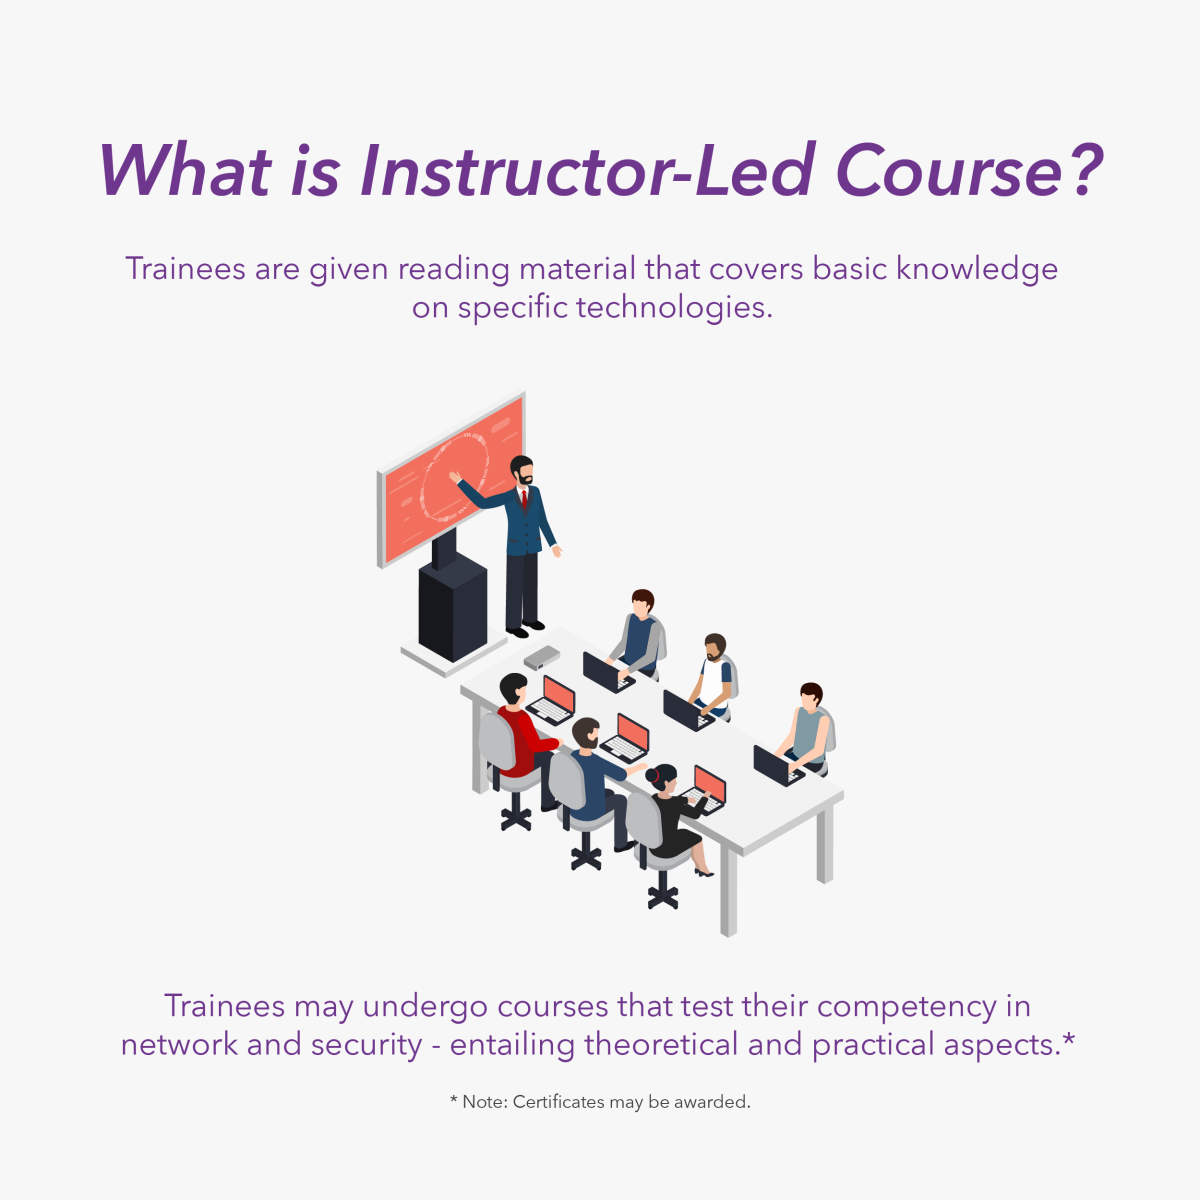 what is instructor-led course